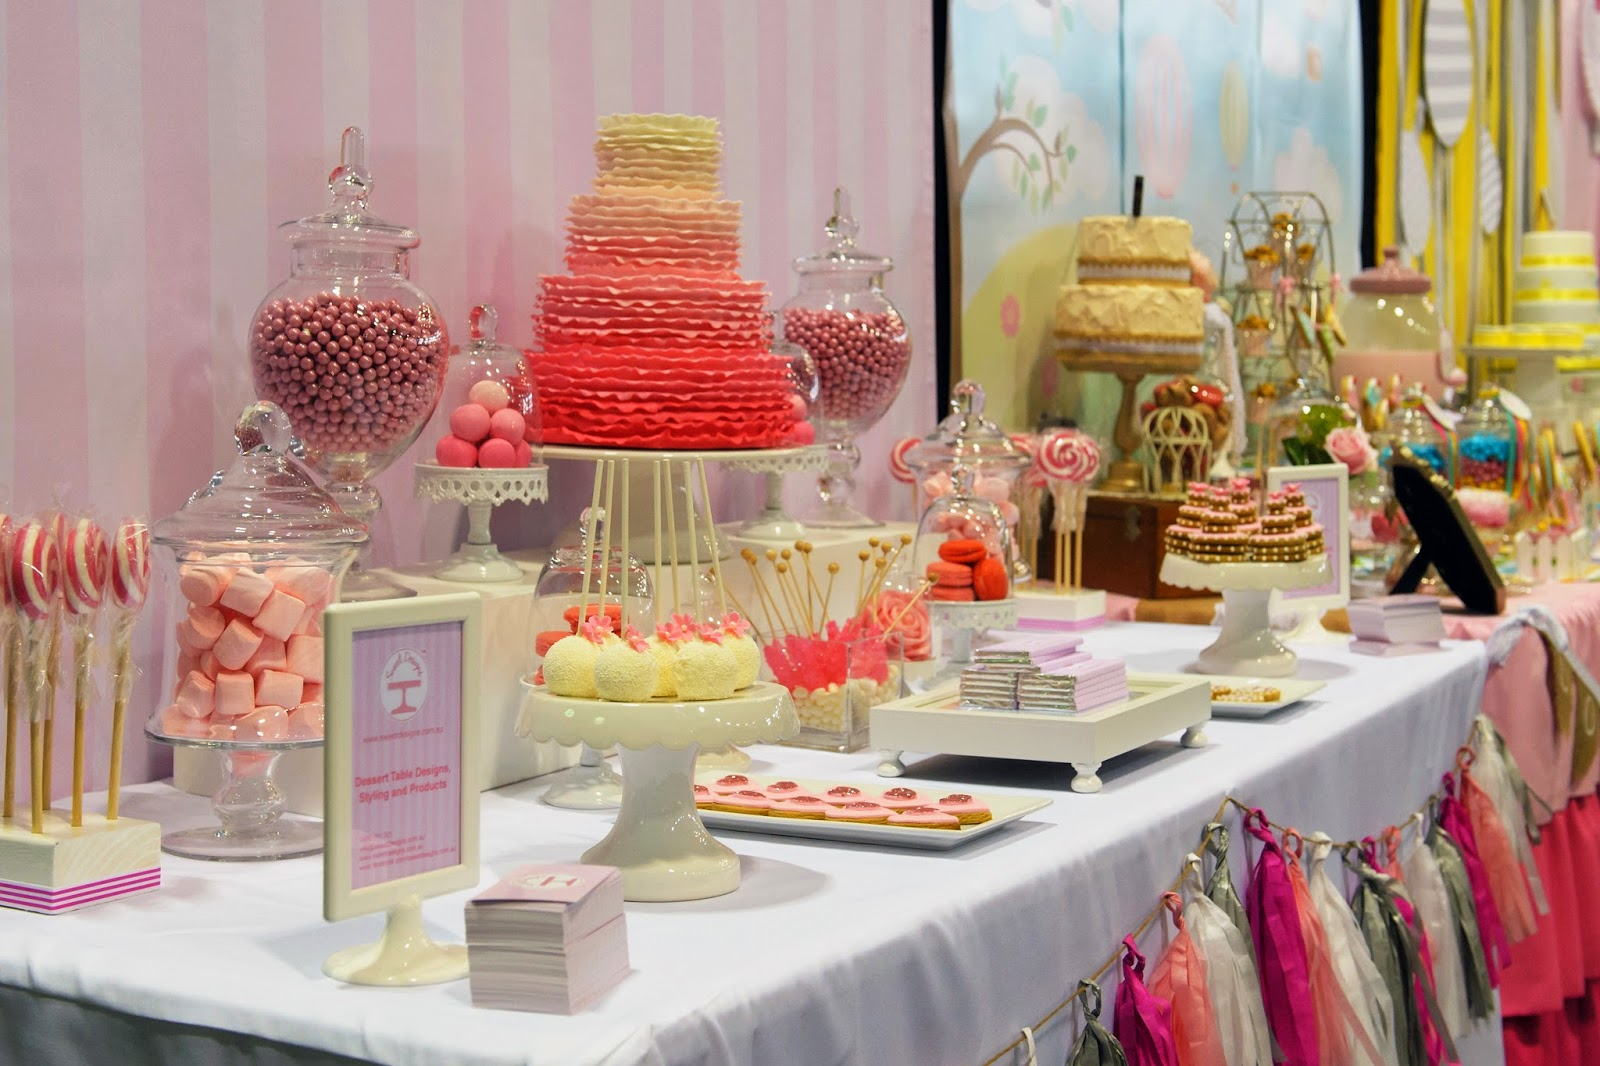 Where To Buy Cake Decorating Supplies Melbourne